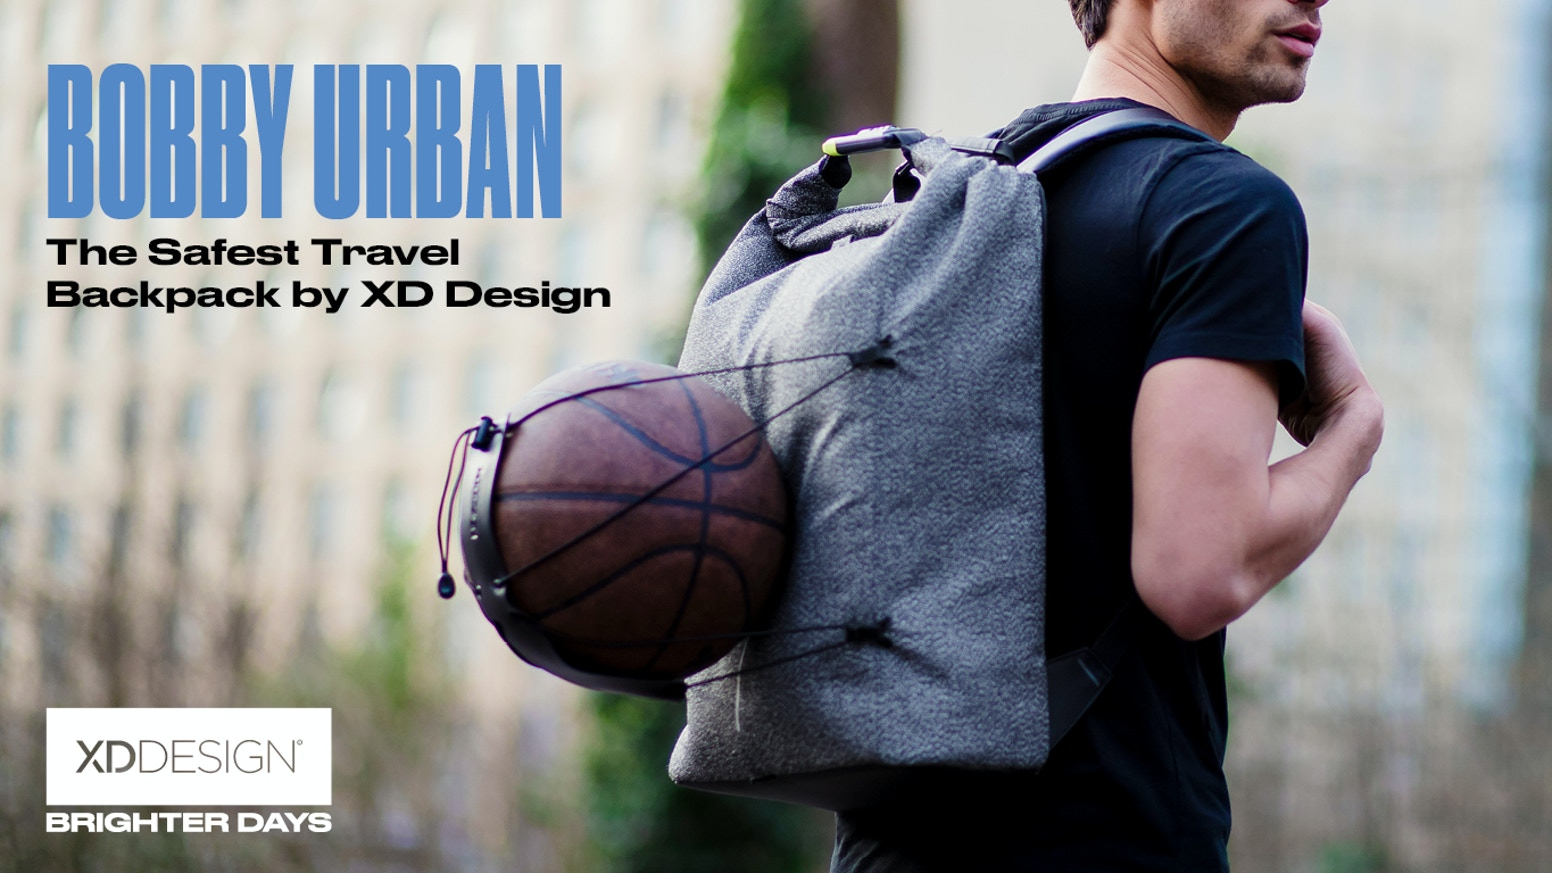 2 years after the introduction of our worldwide success -the Bobby backpack- we proudly introduce the Bobby Urban Anti-Theft Backpack.